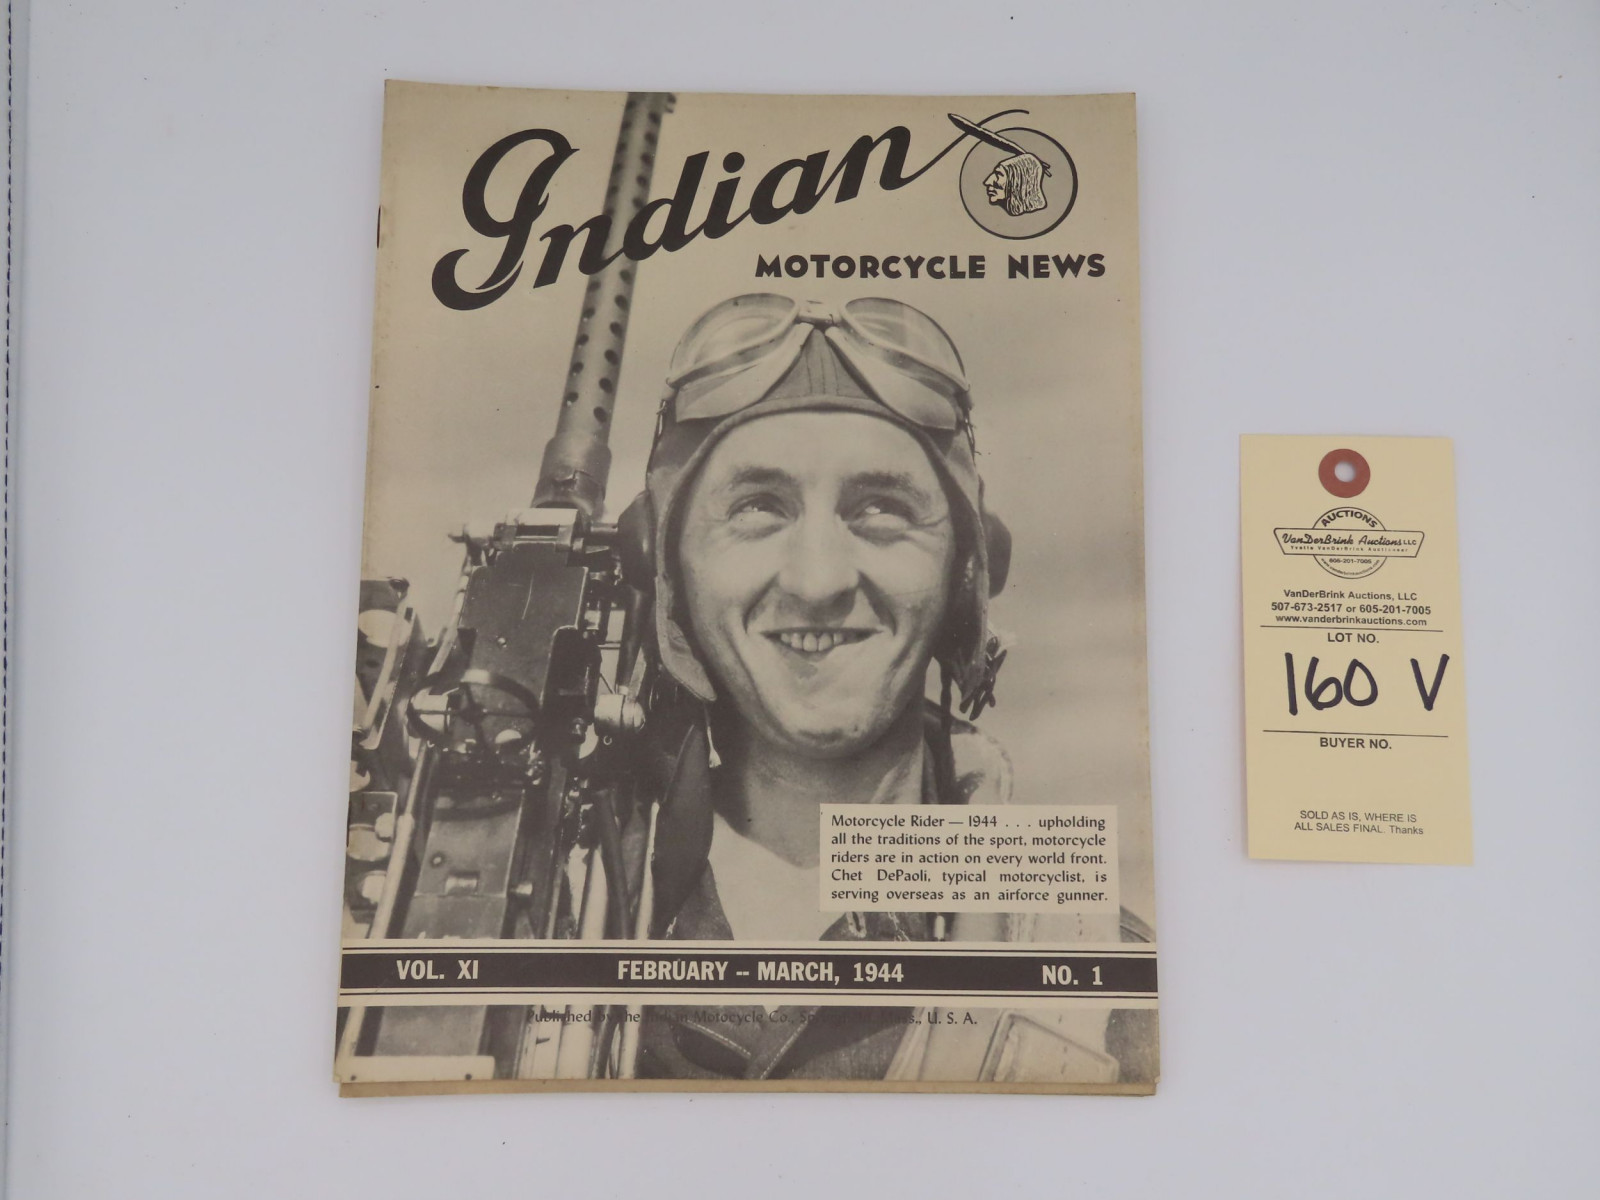 Indian Motorcycle News - 1944 - Image 3